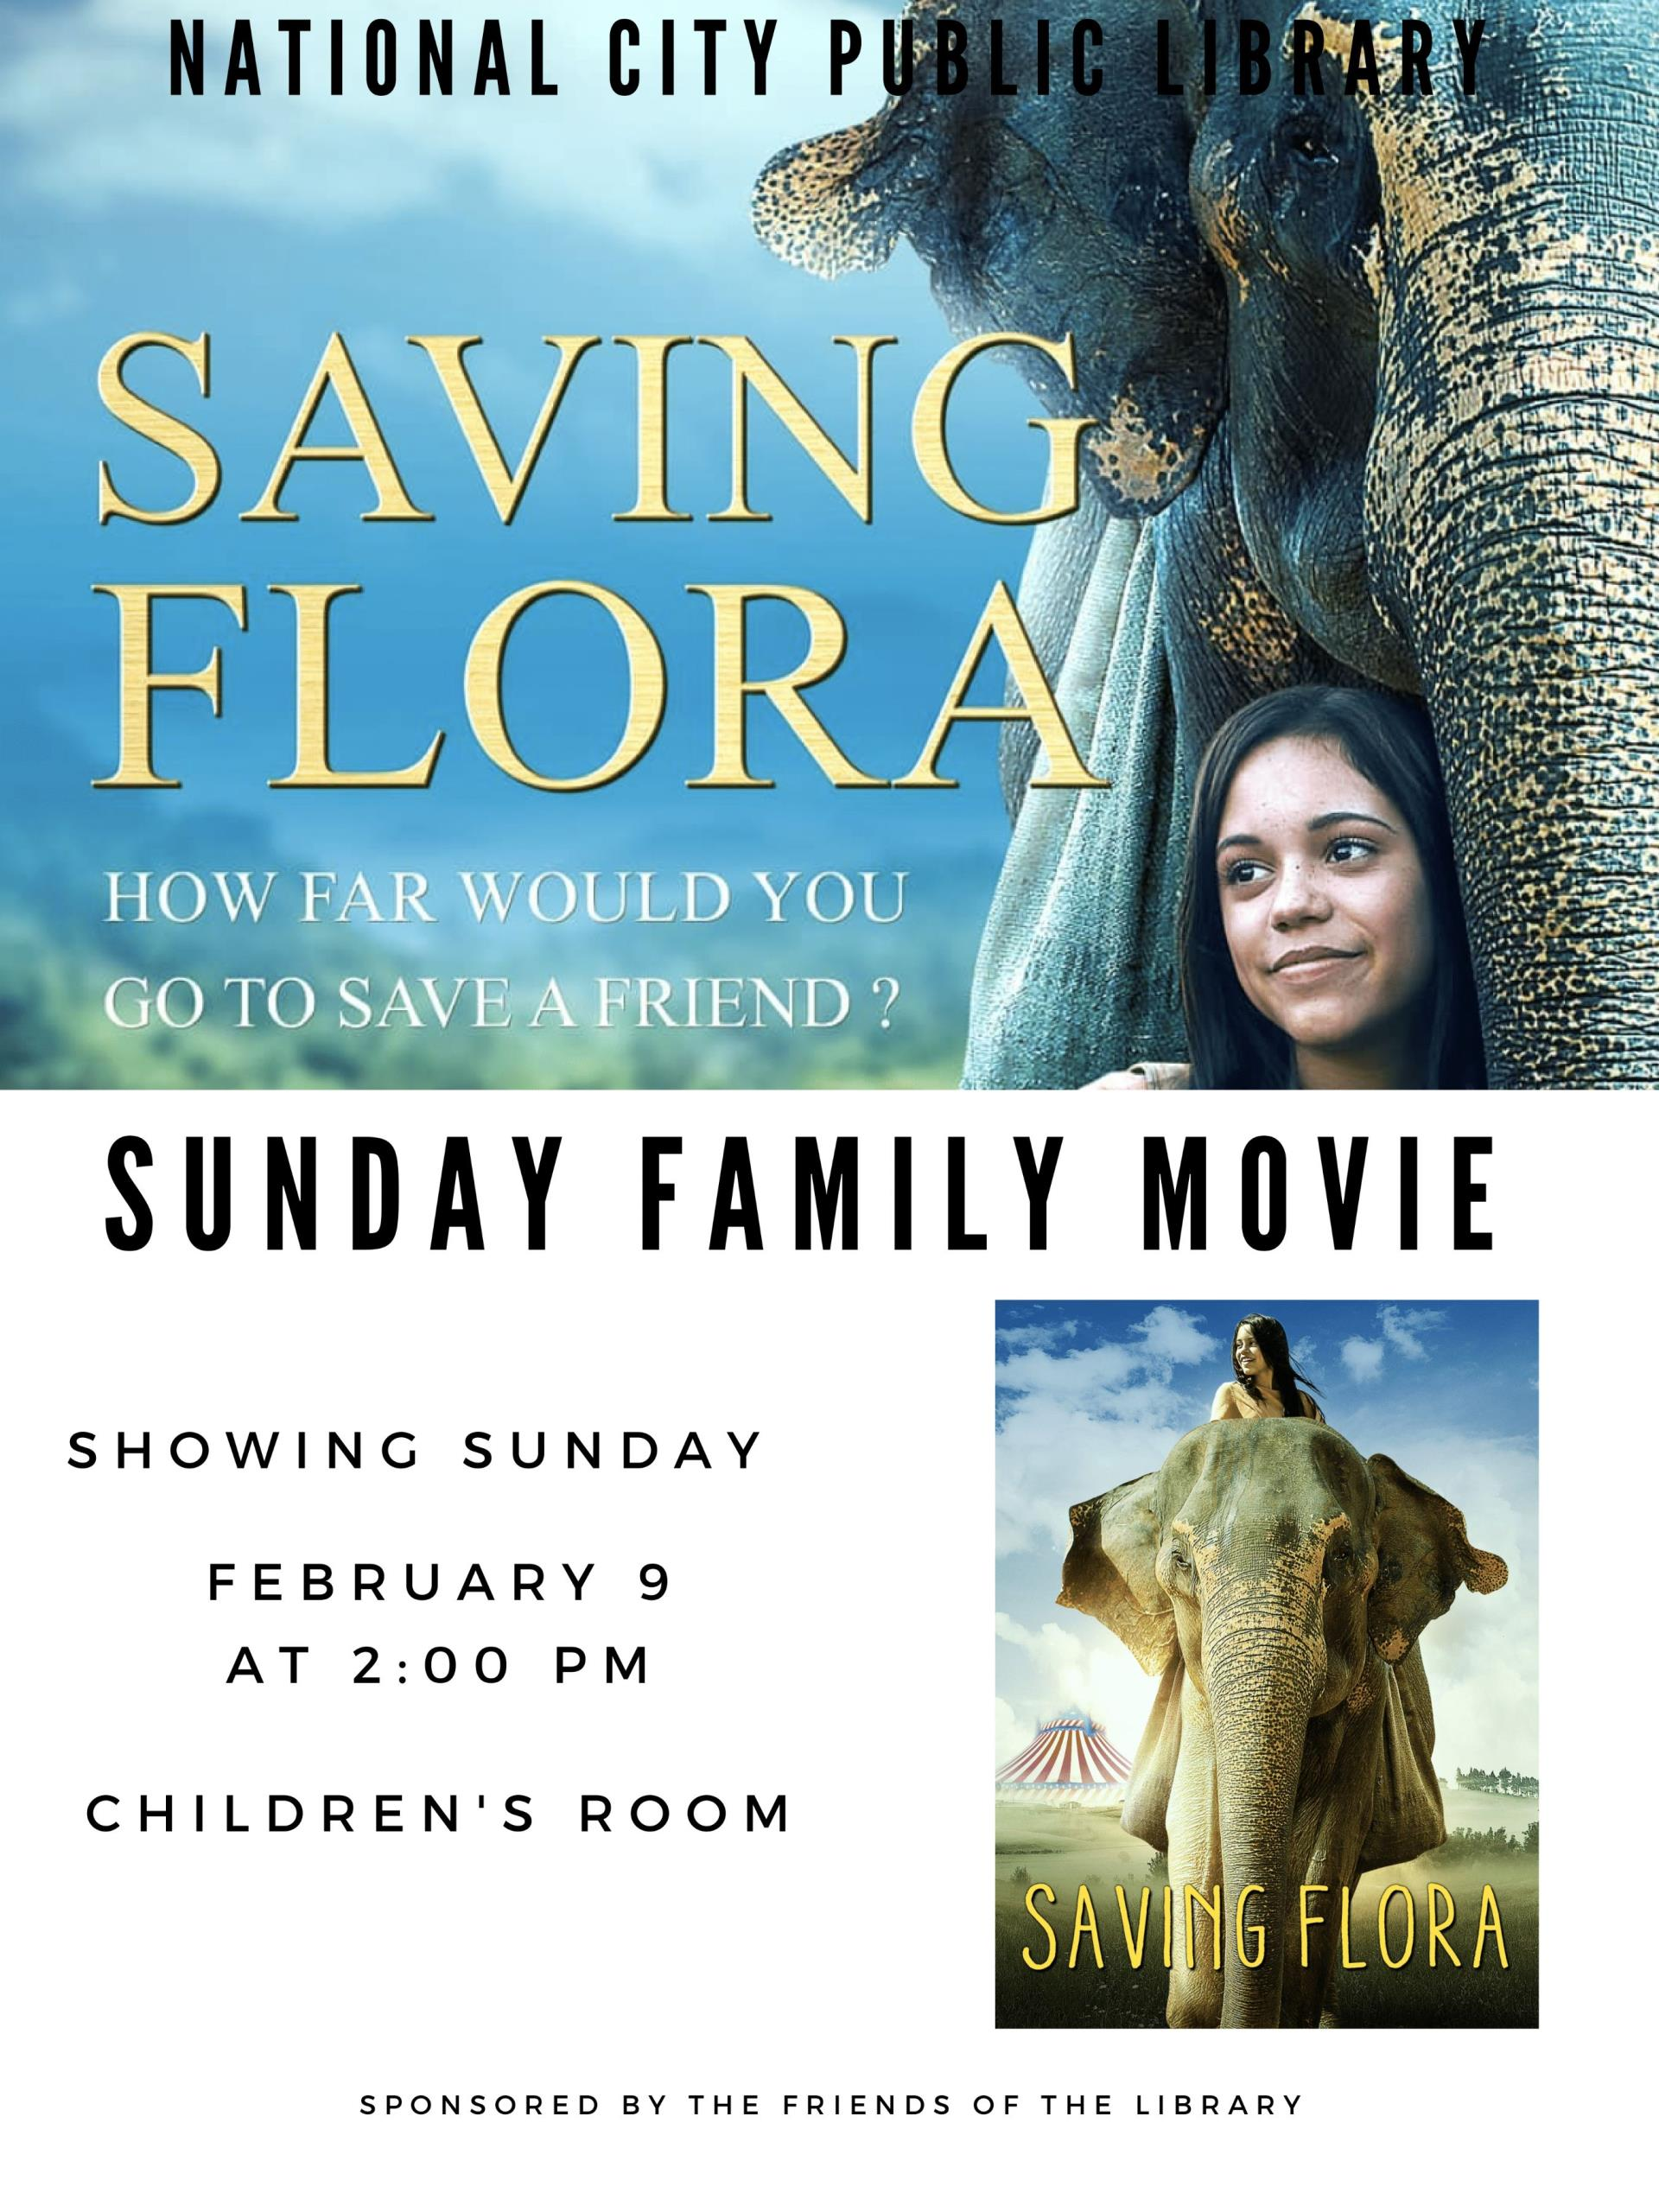 Feb 9 - Saving Flora